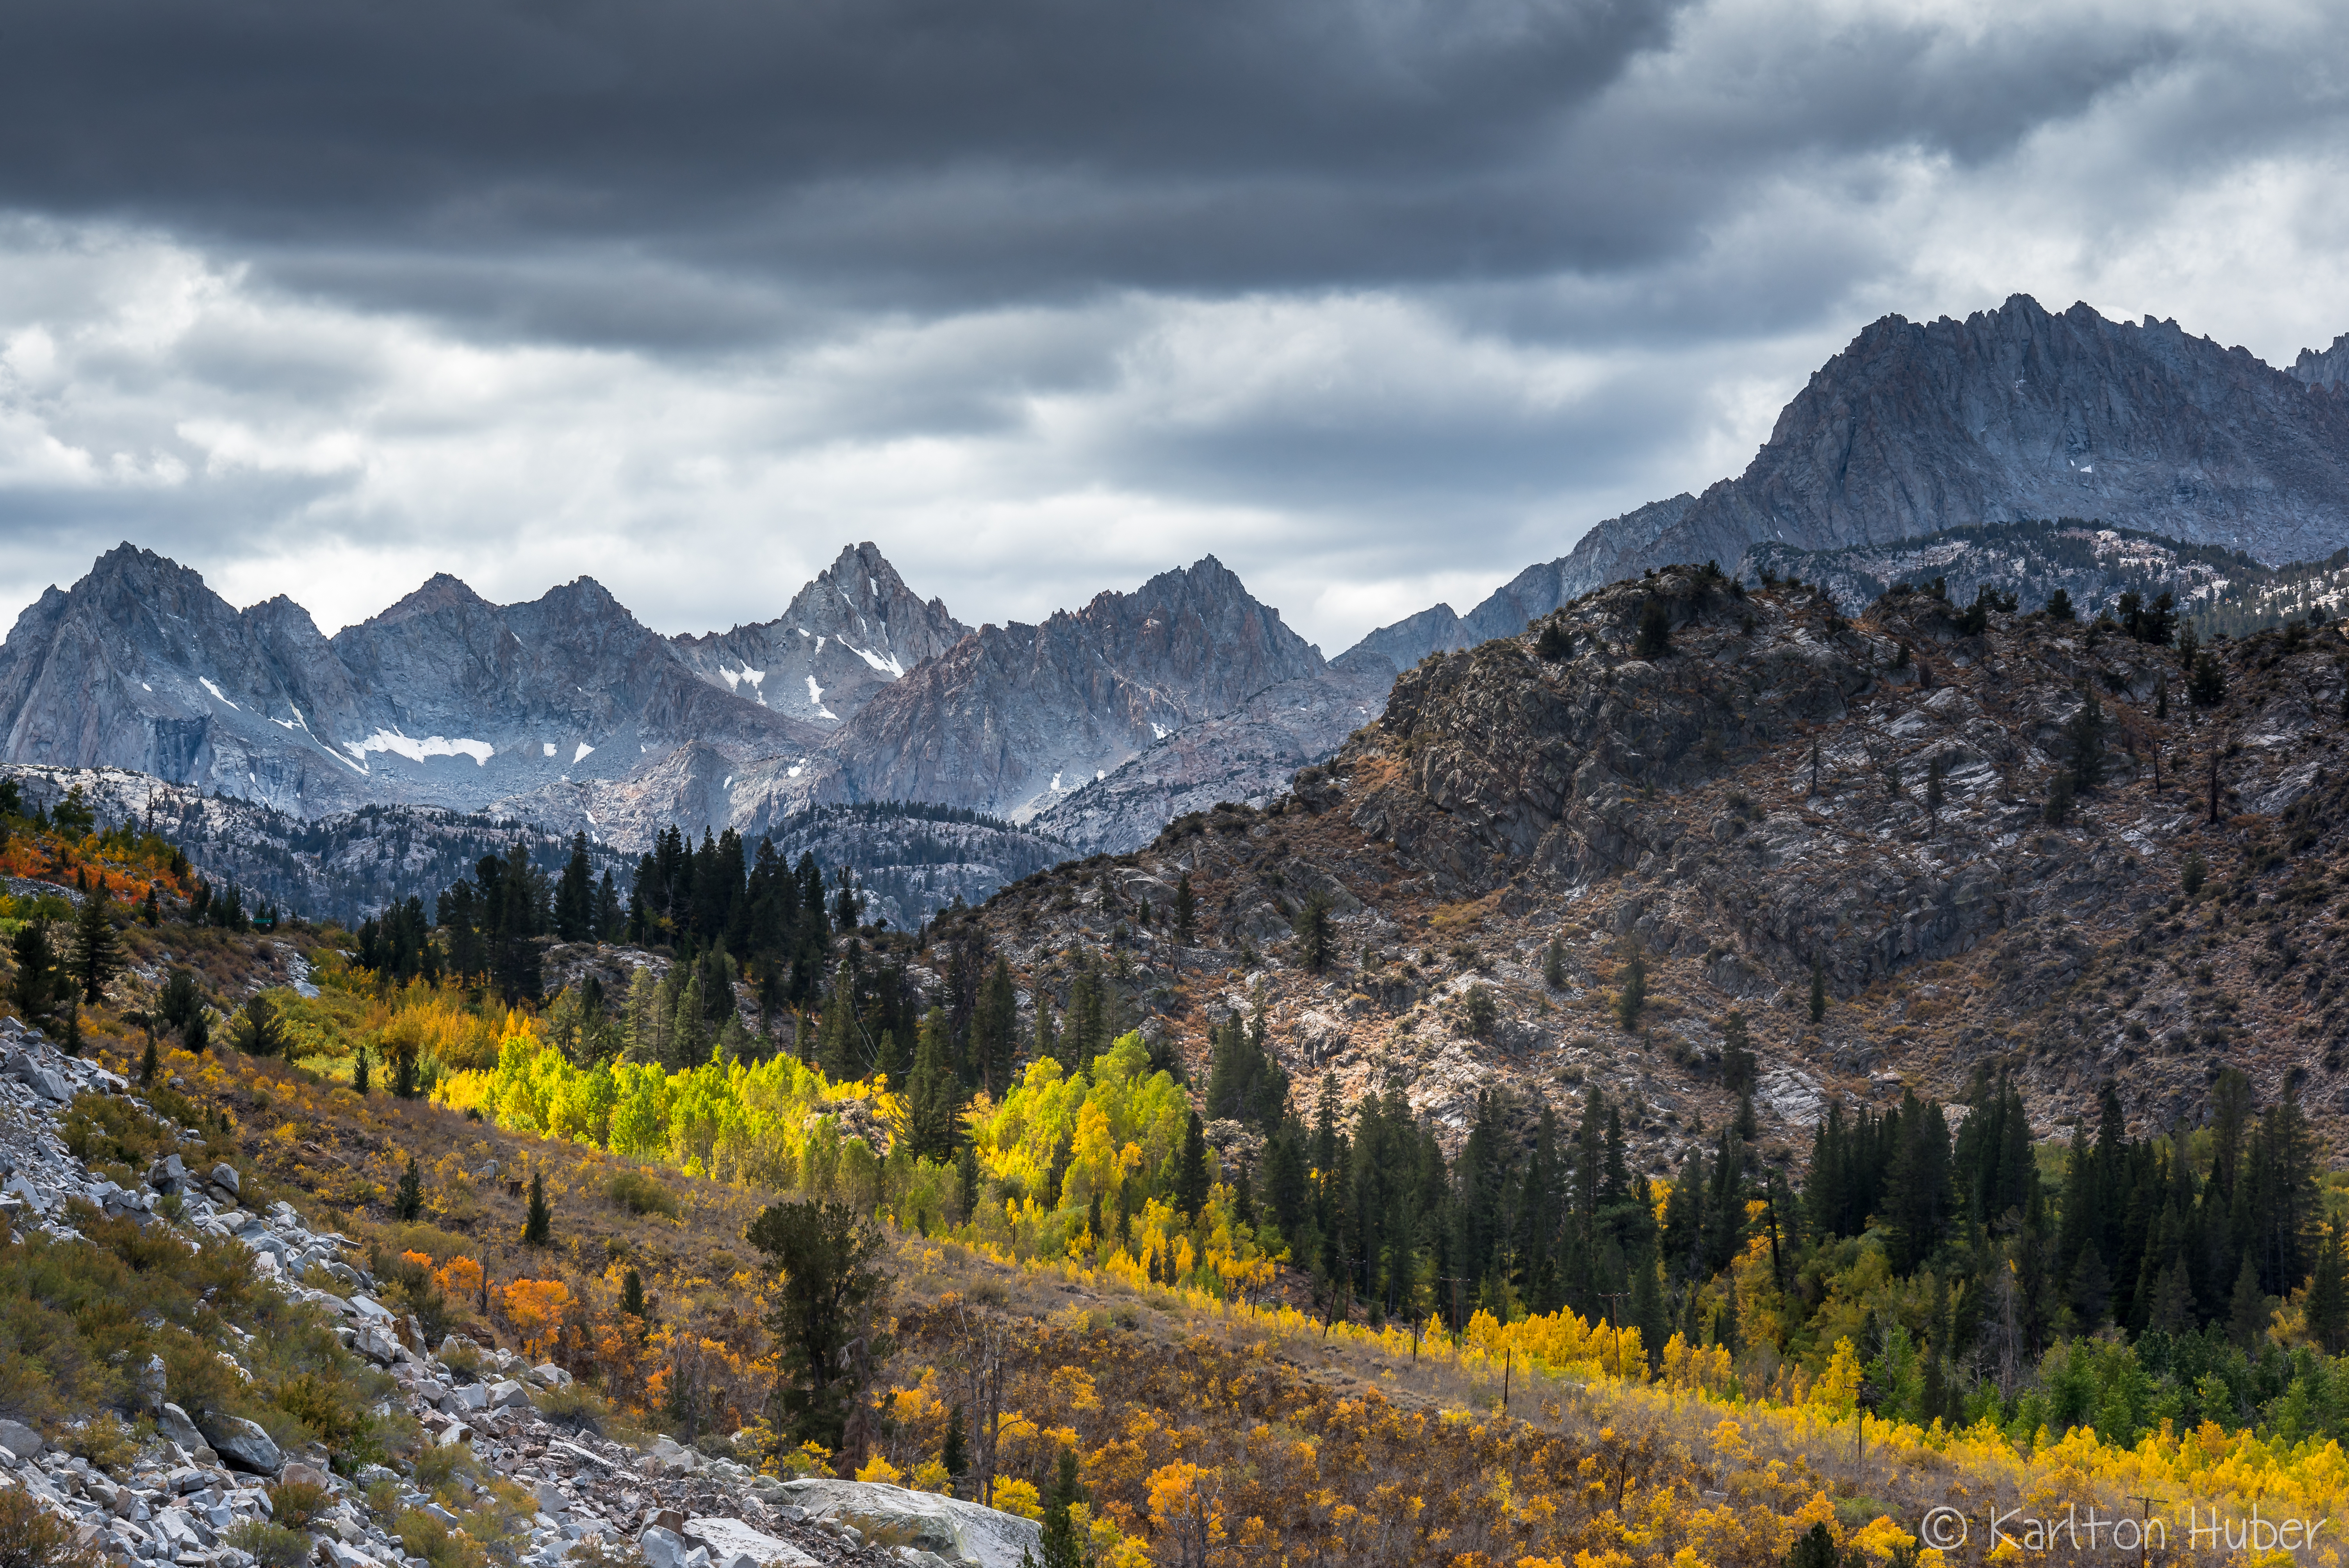 Autumn in the Sierra